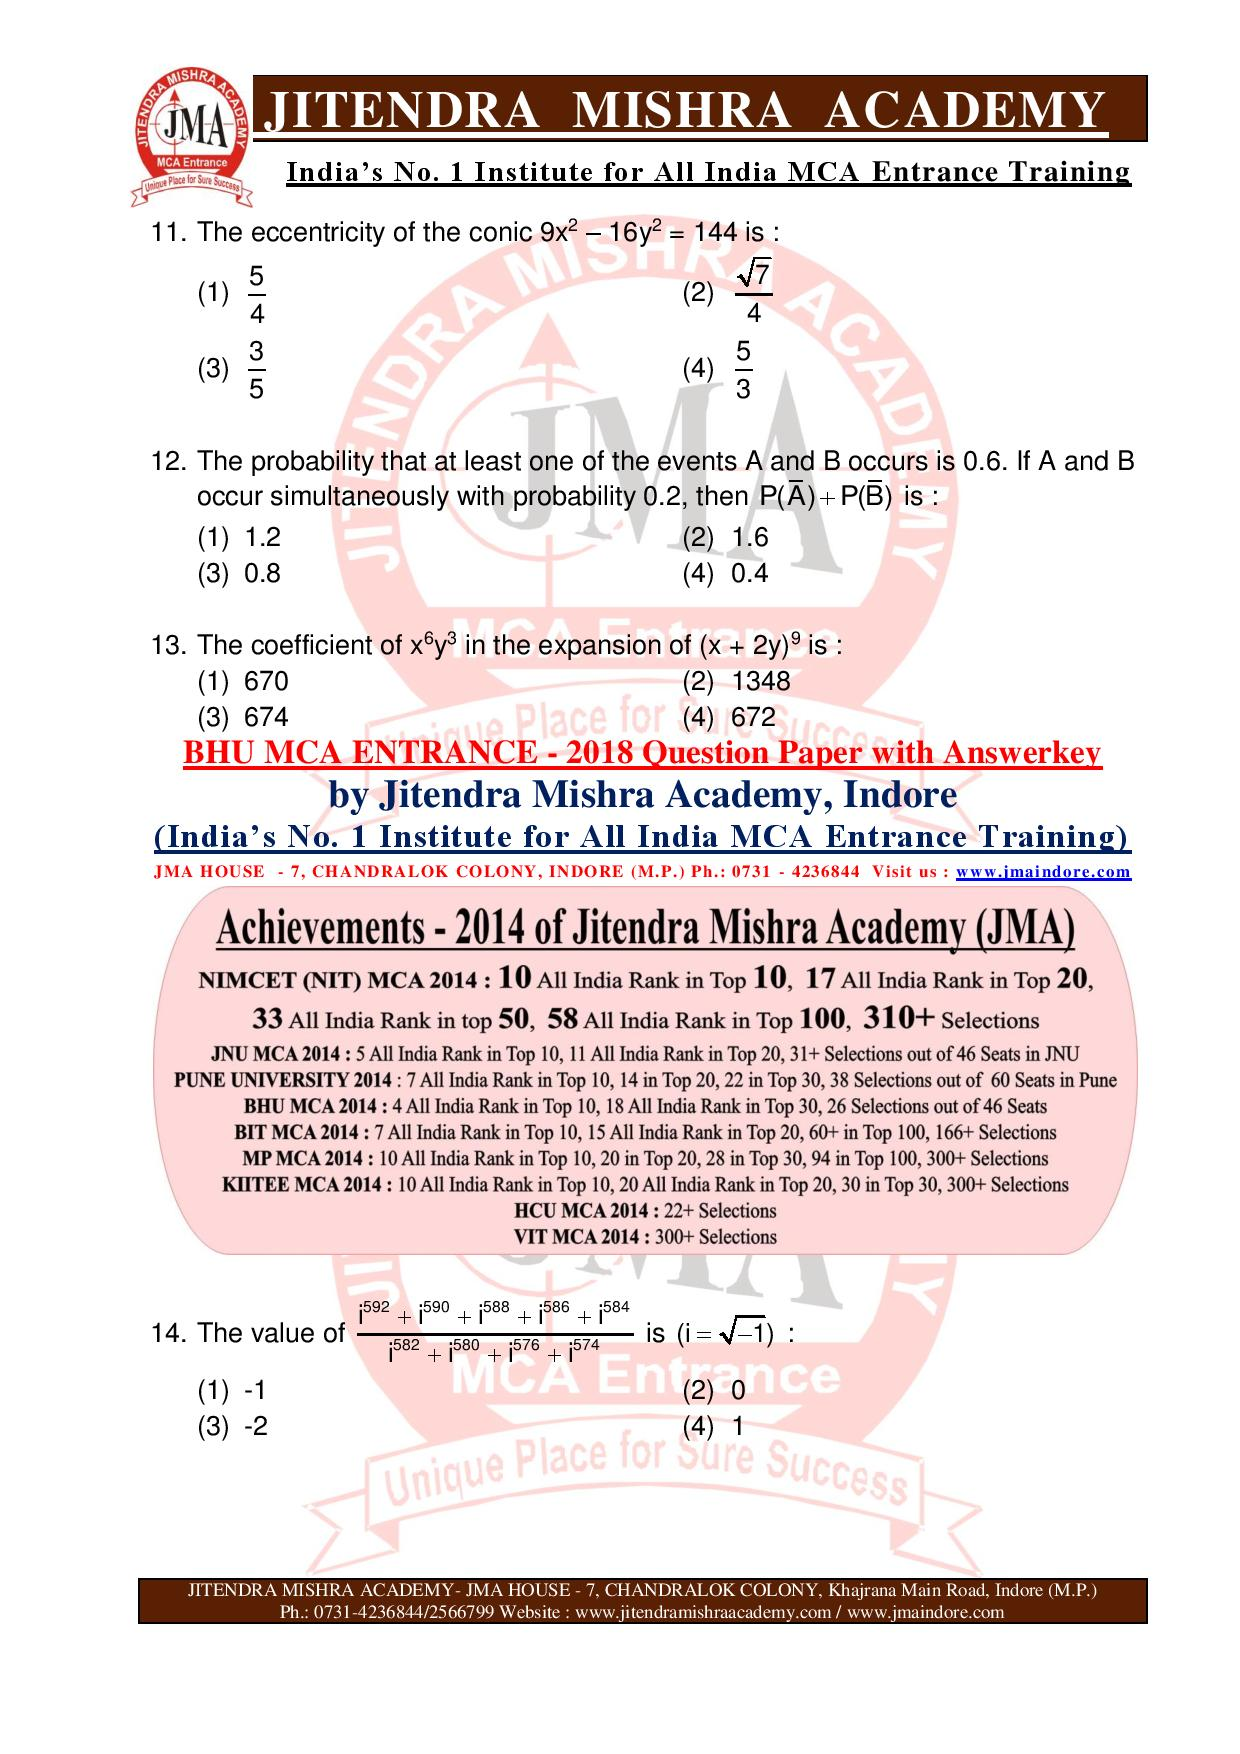 BHU MCA 2018 QUESTION PAPER12-page-004